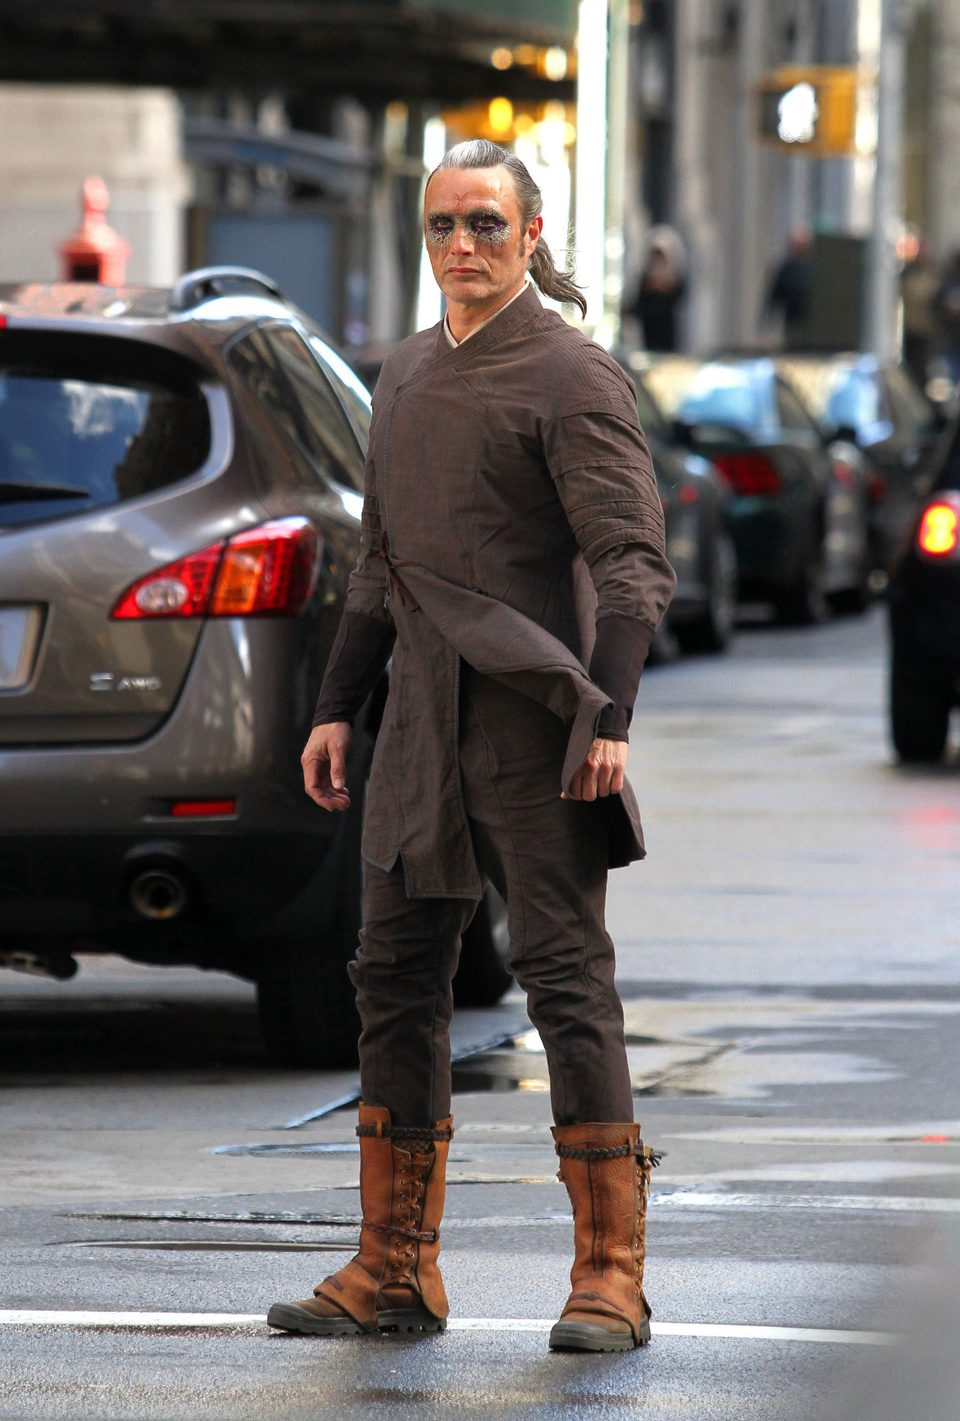 Mads Mikkelsen at the New York set of 'Doctor Strange'